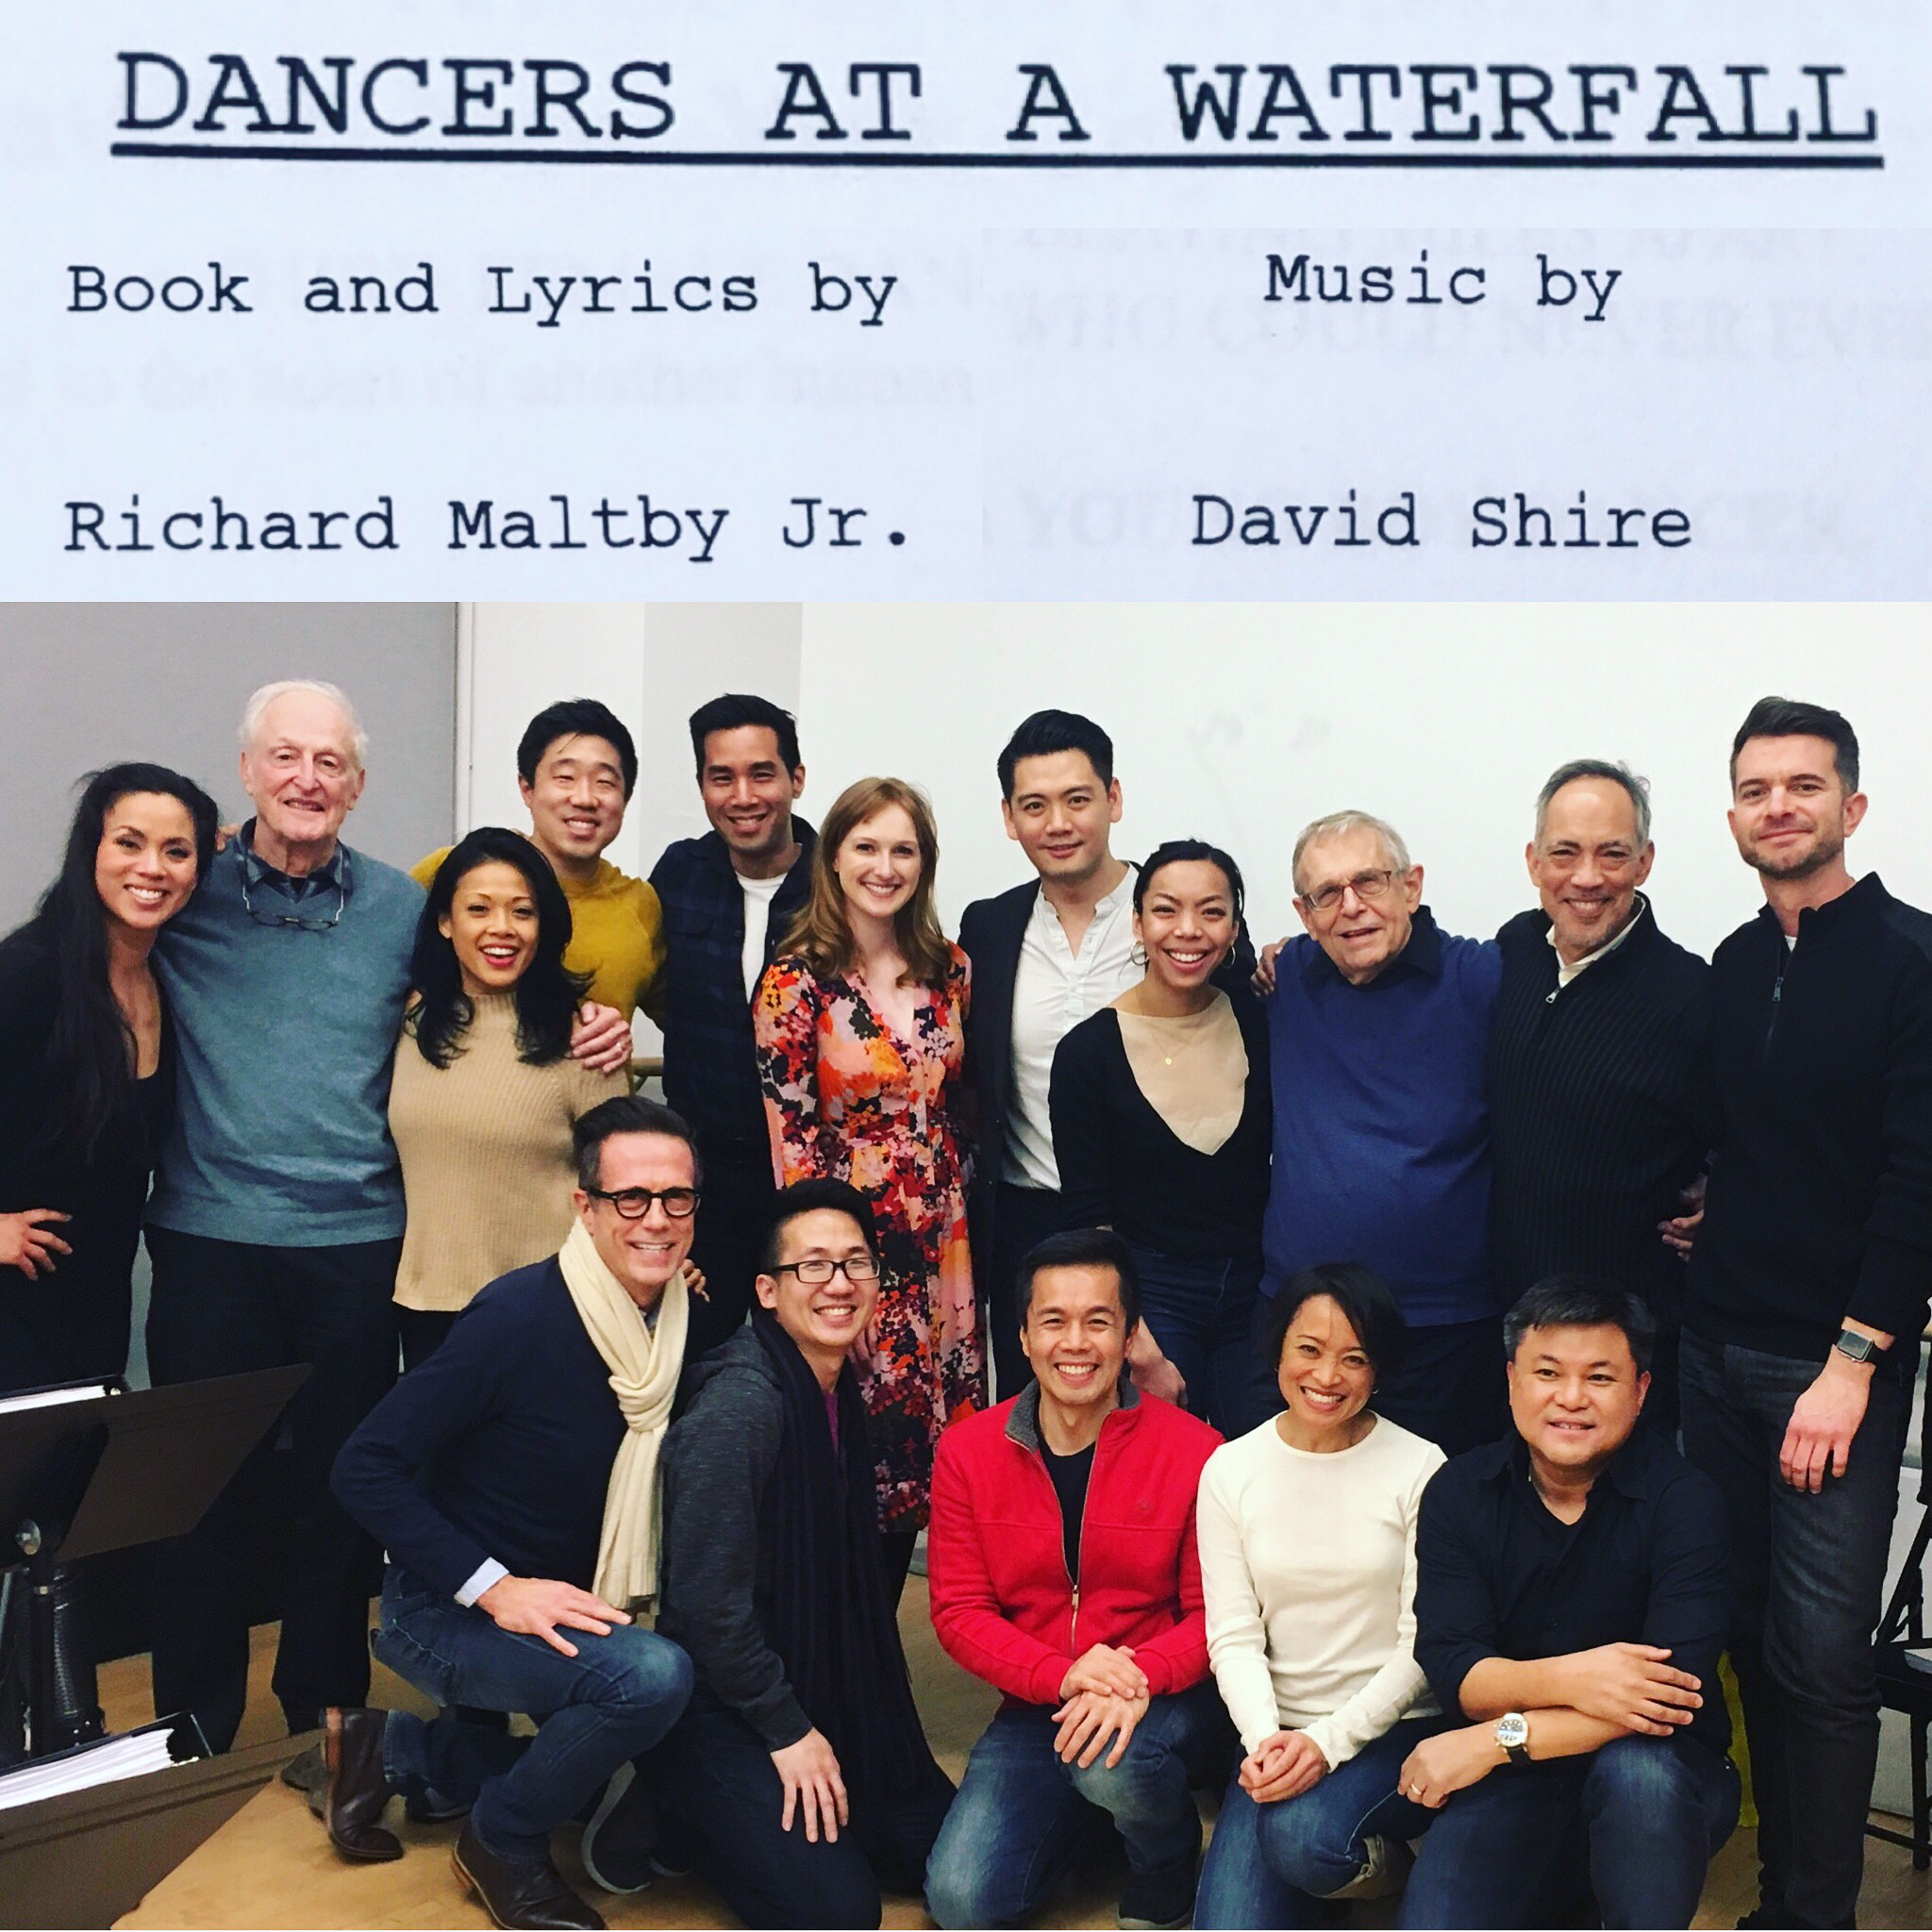 Cast & Team of Maltby & Shire's DANCERS AT A WATERFALL